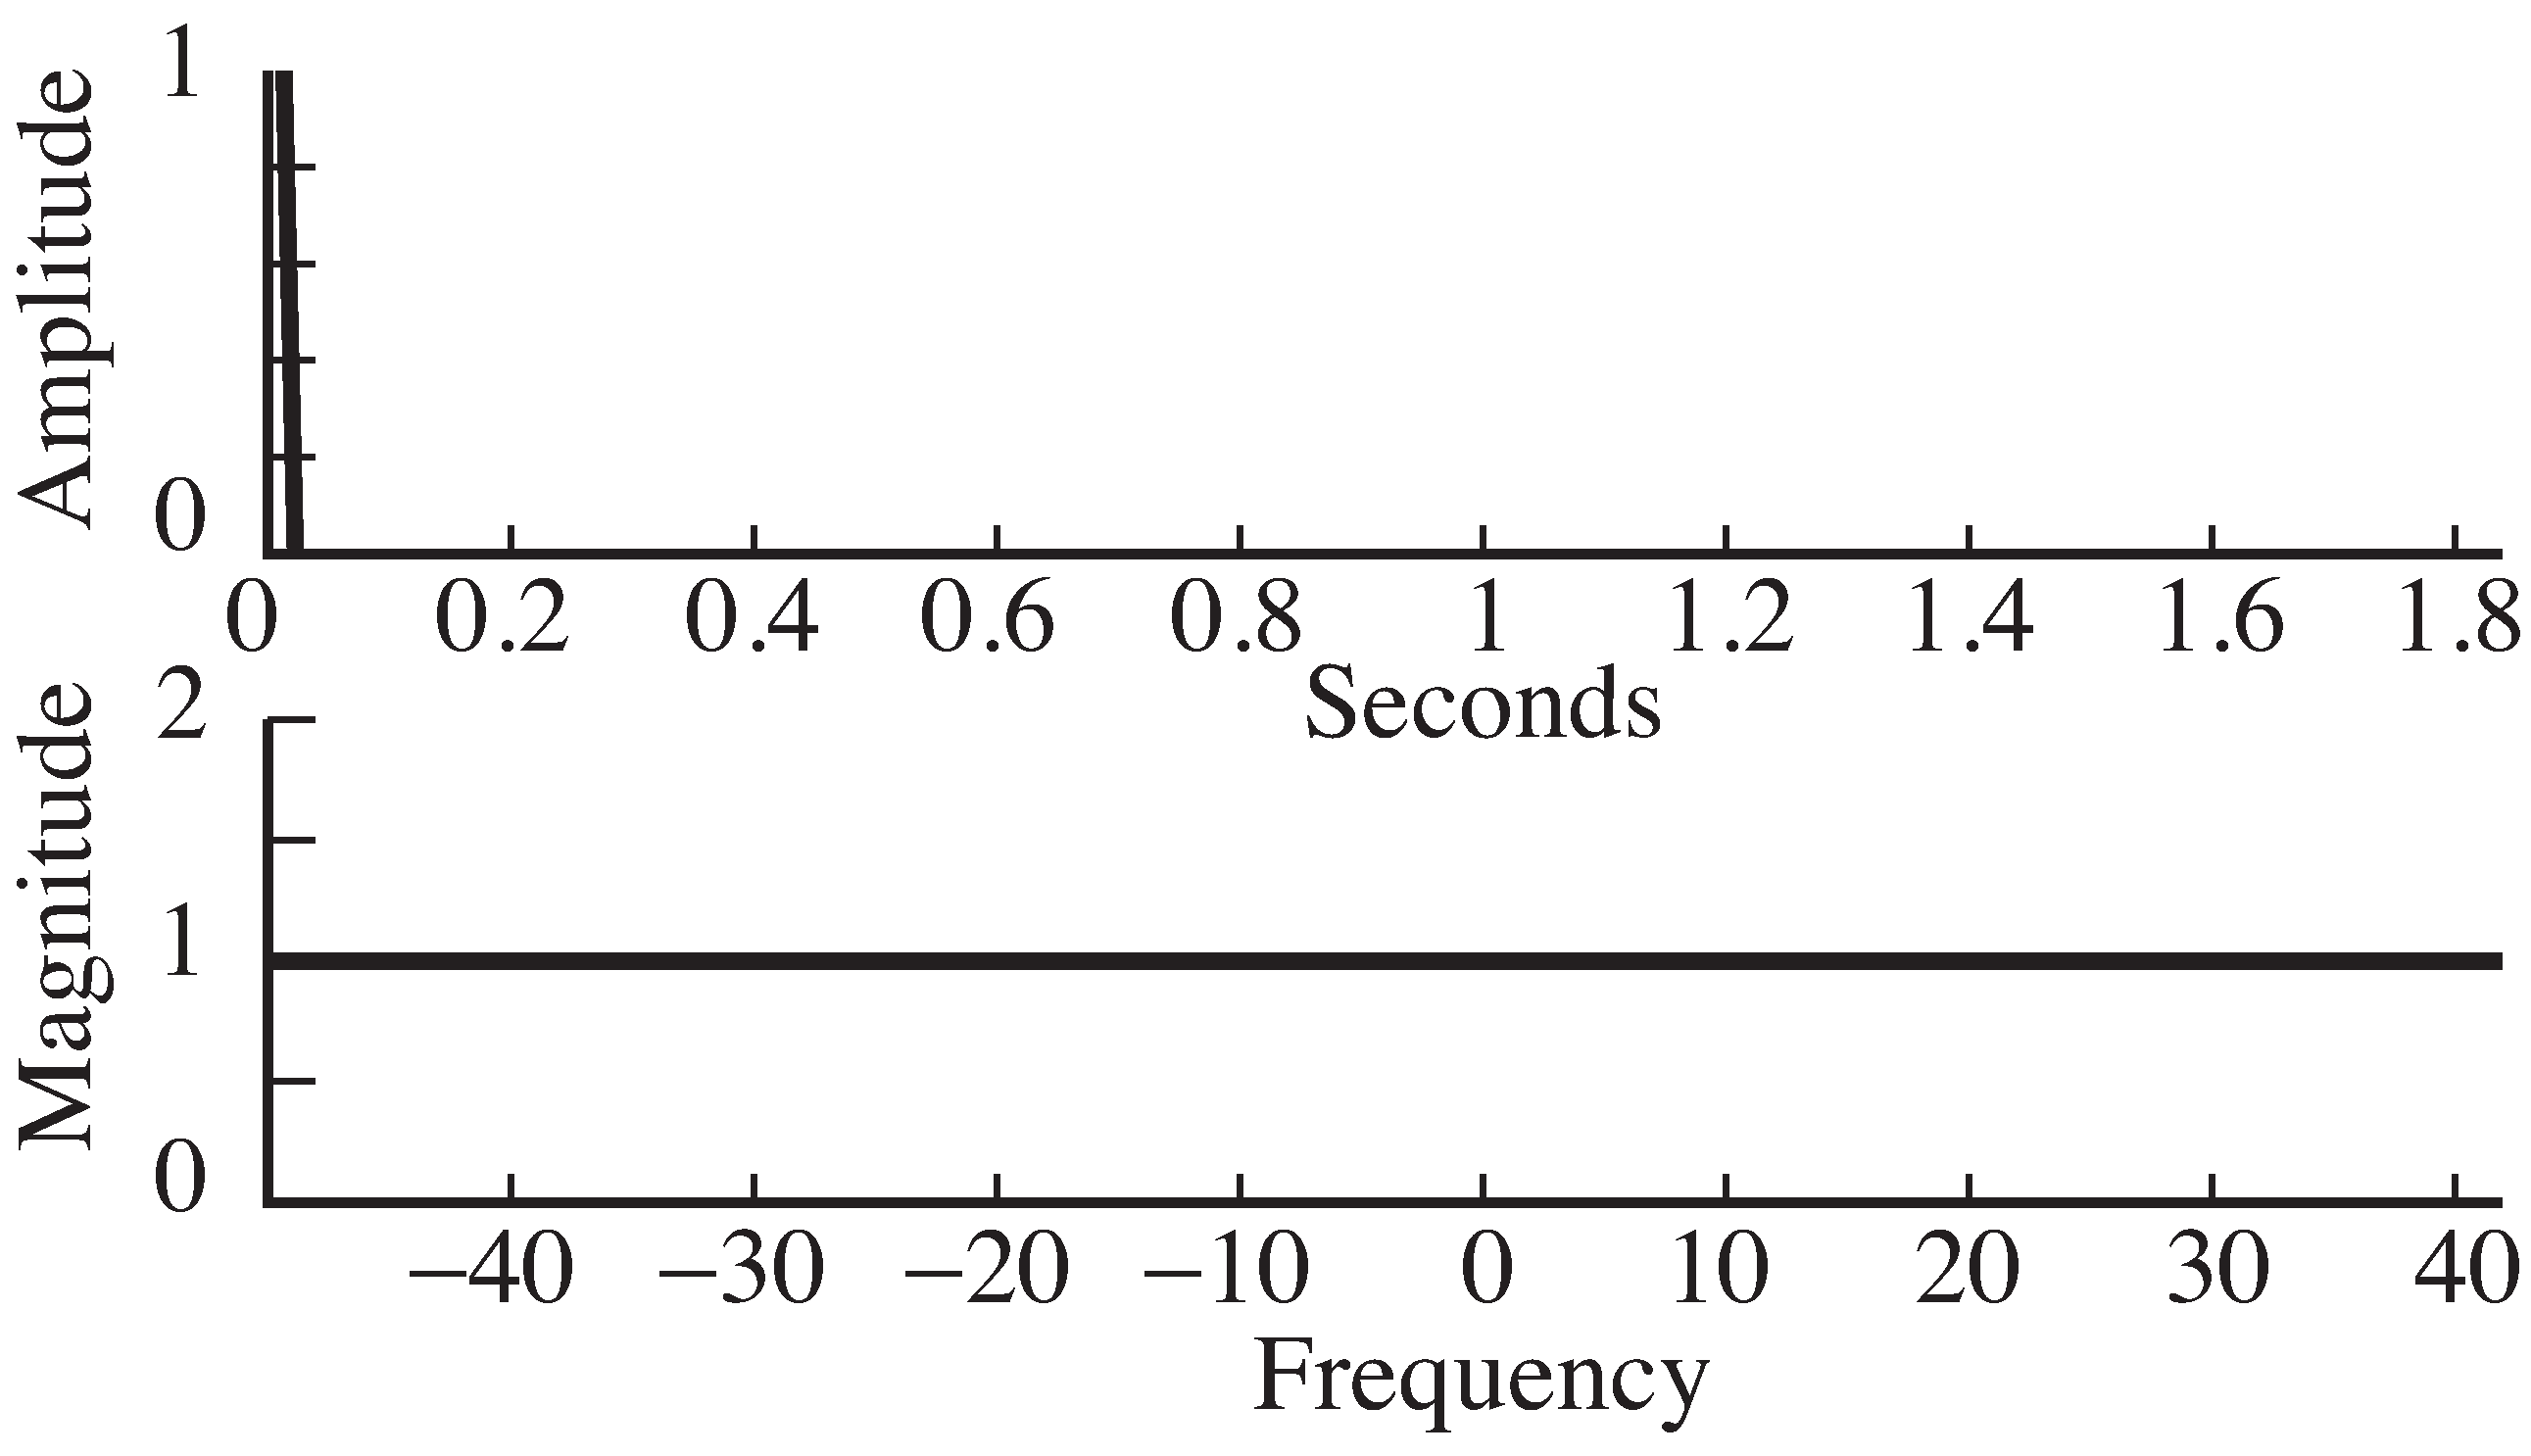 A (discrete) delta function at time 0 has a magnitude spectrum equal to 1 for all frequencies.